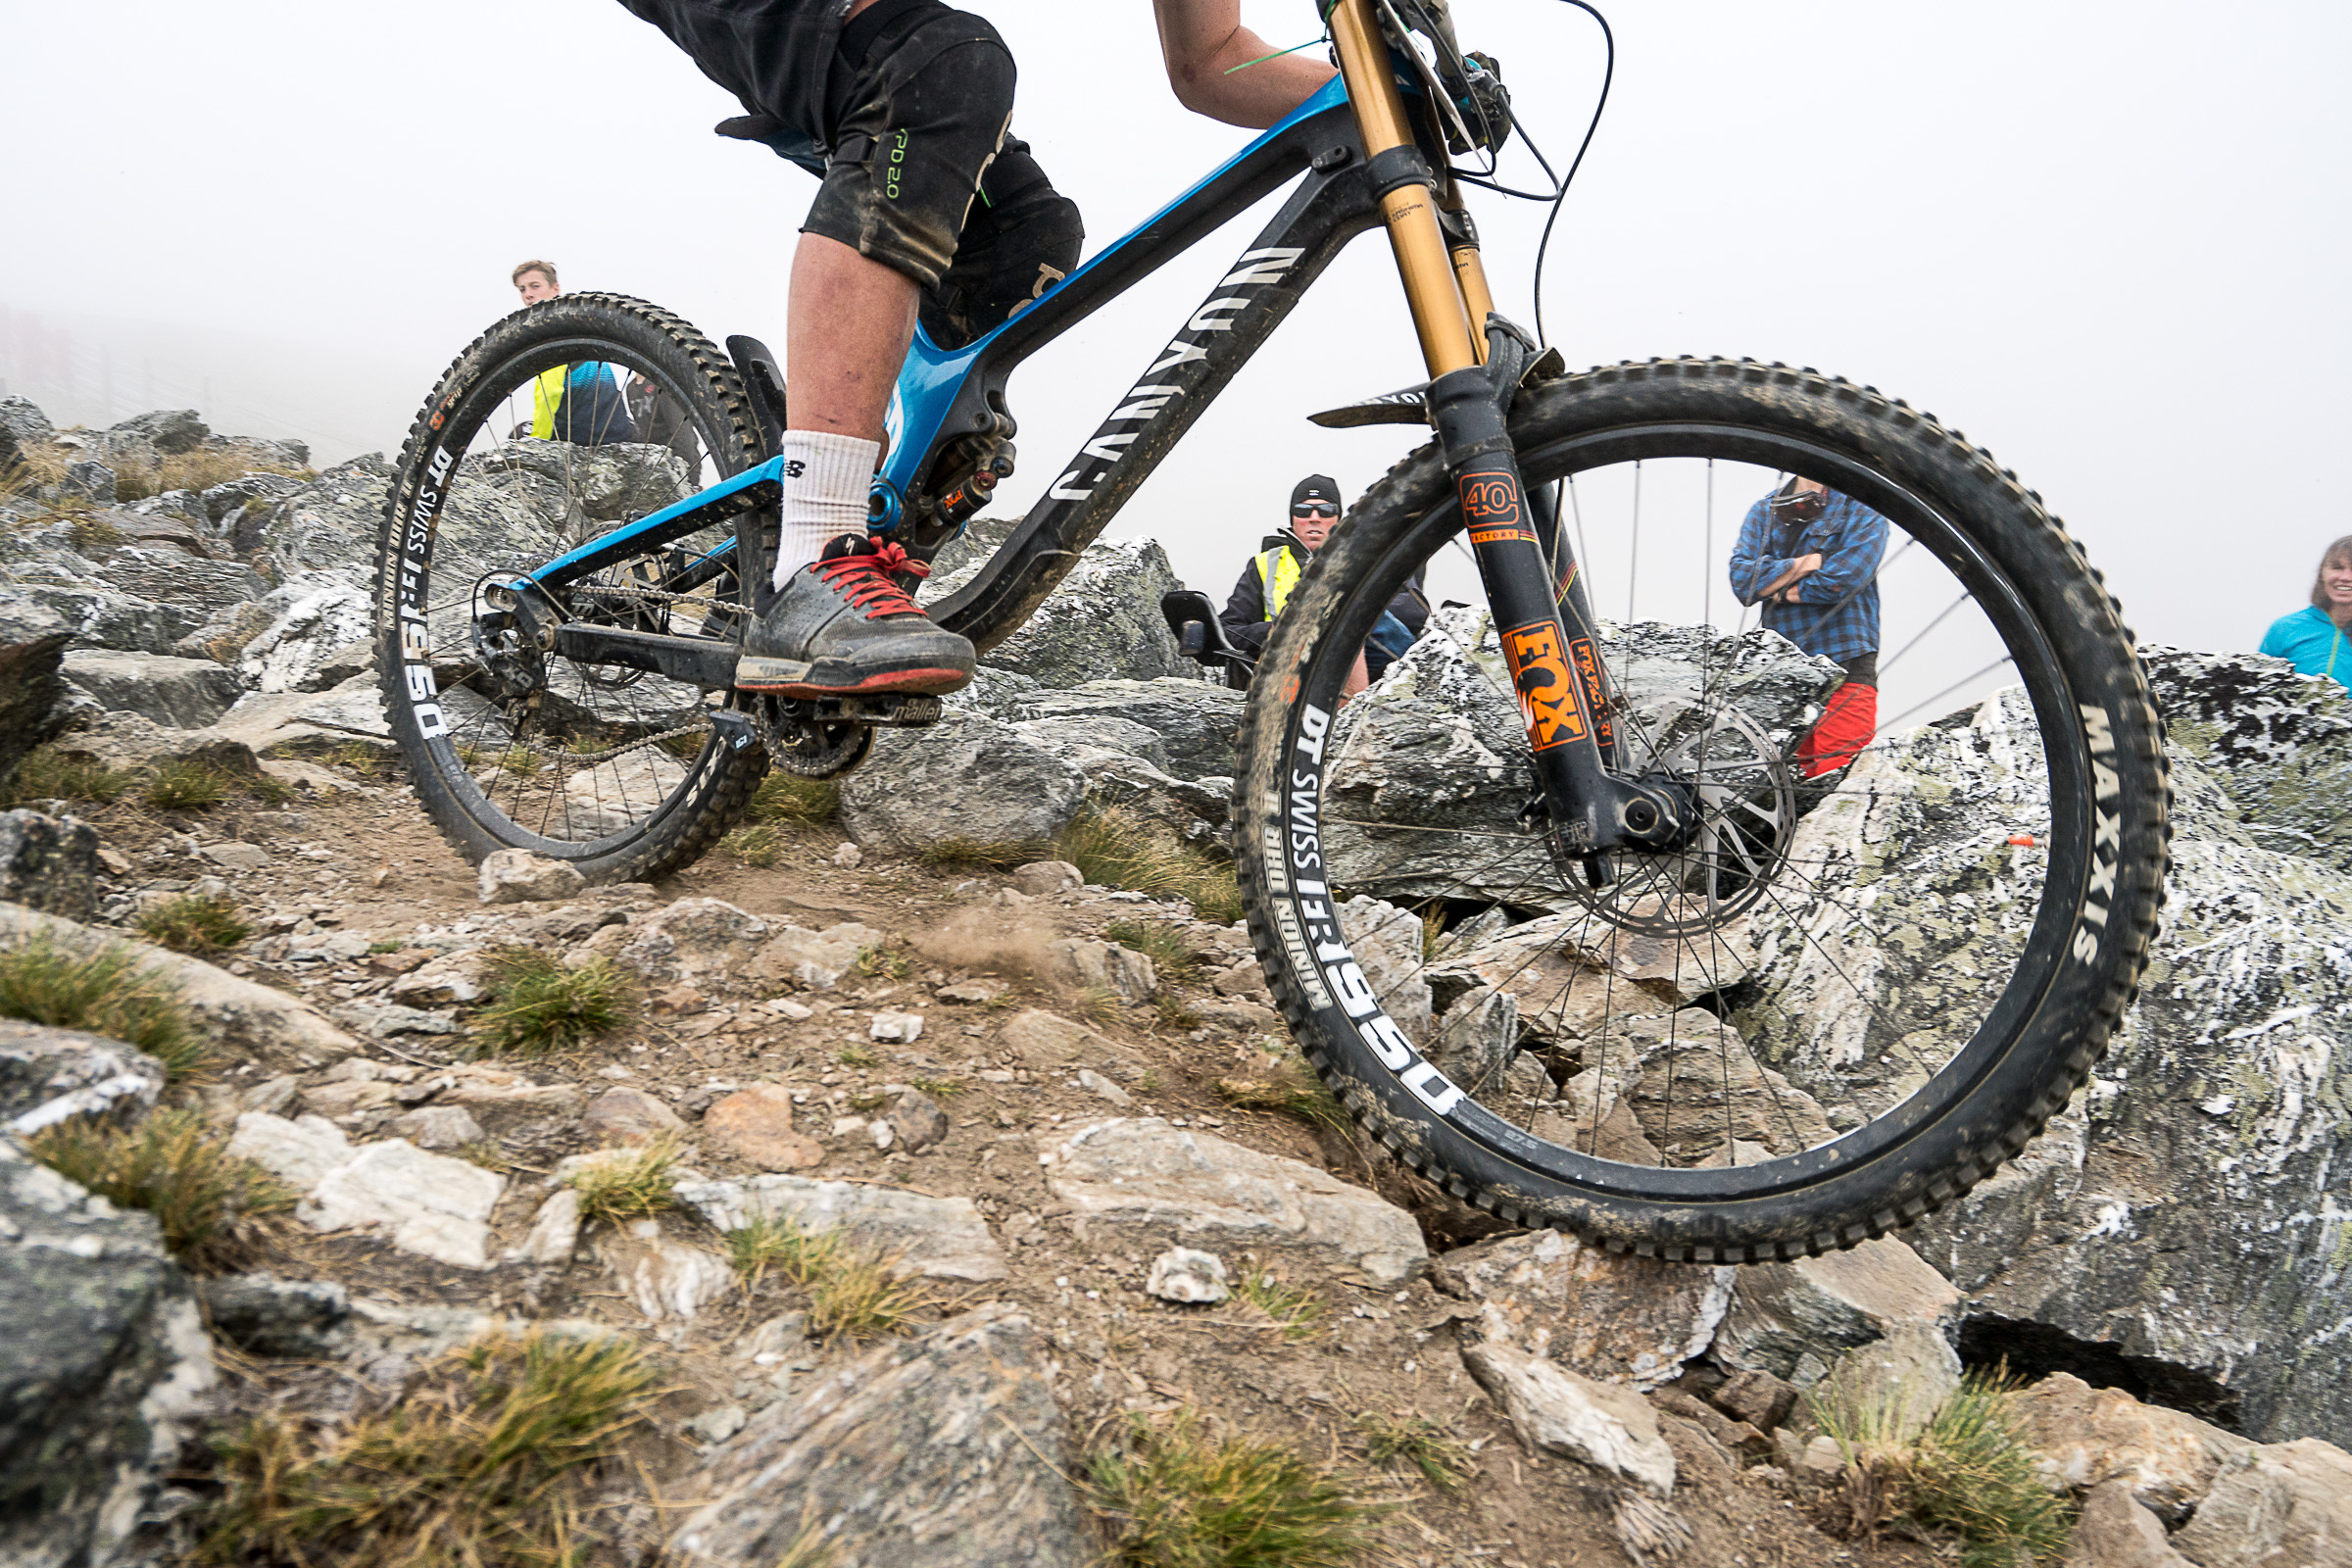 The Rock Garden kept riders on their toes right from the start